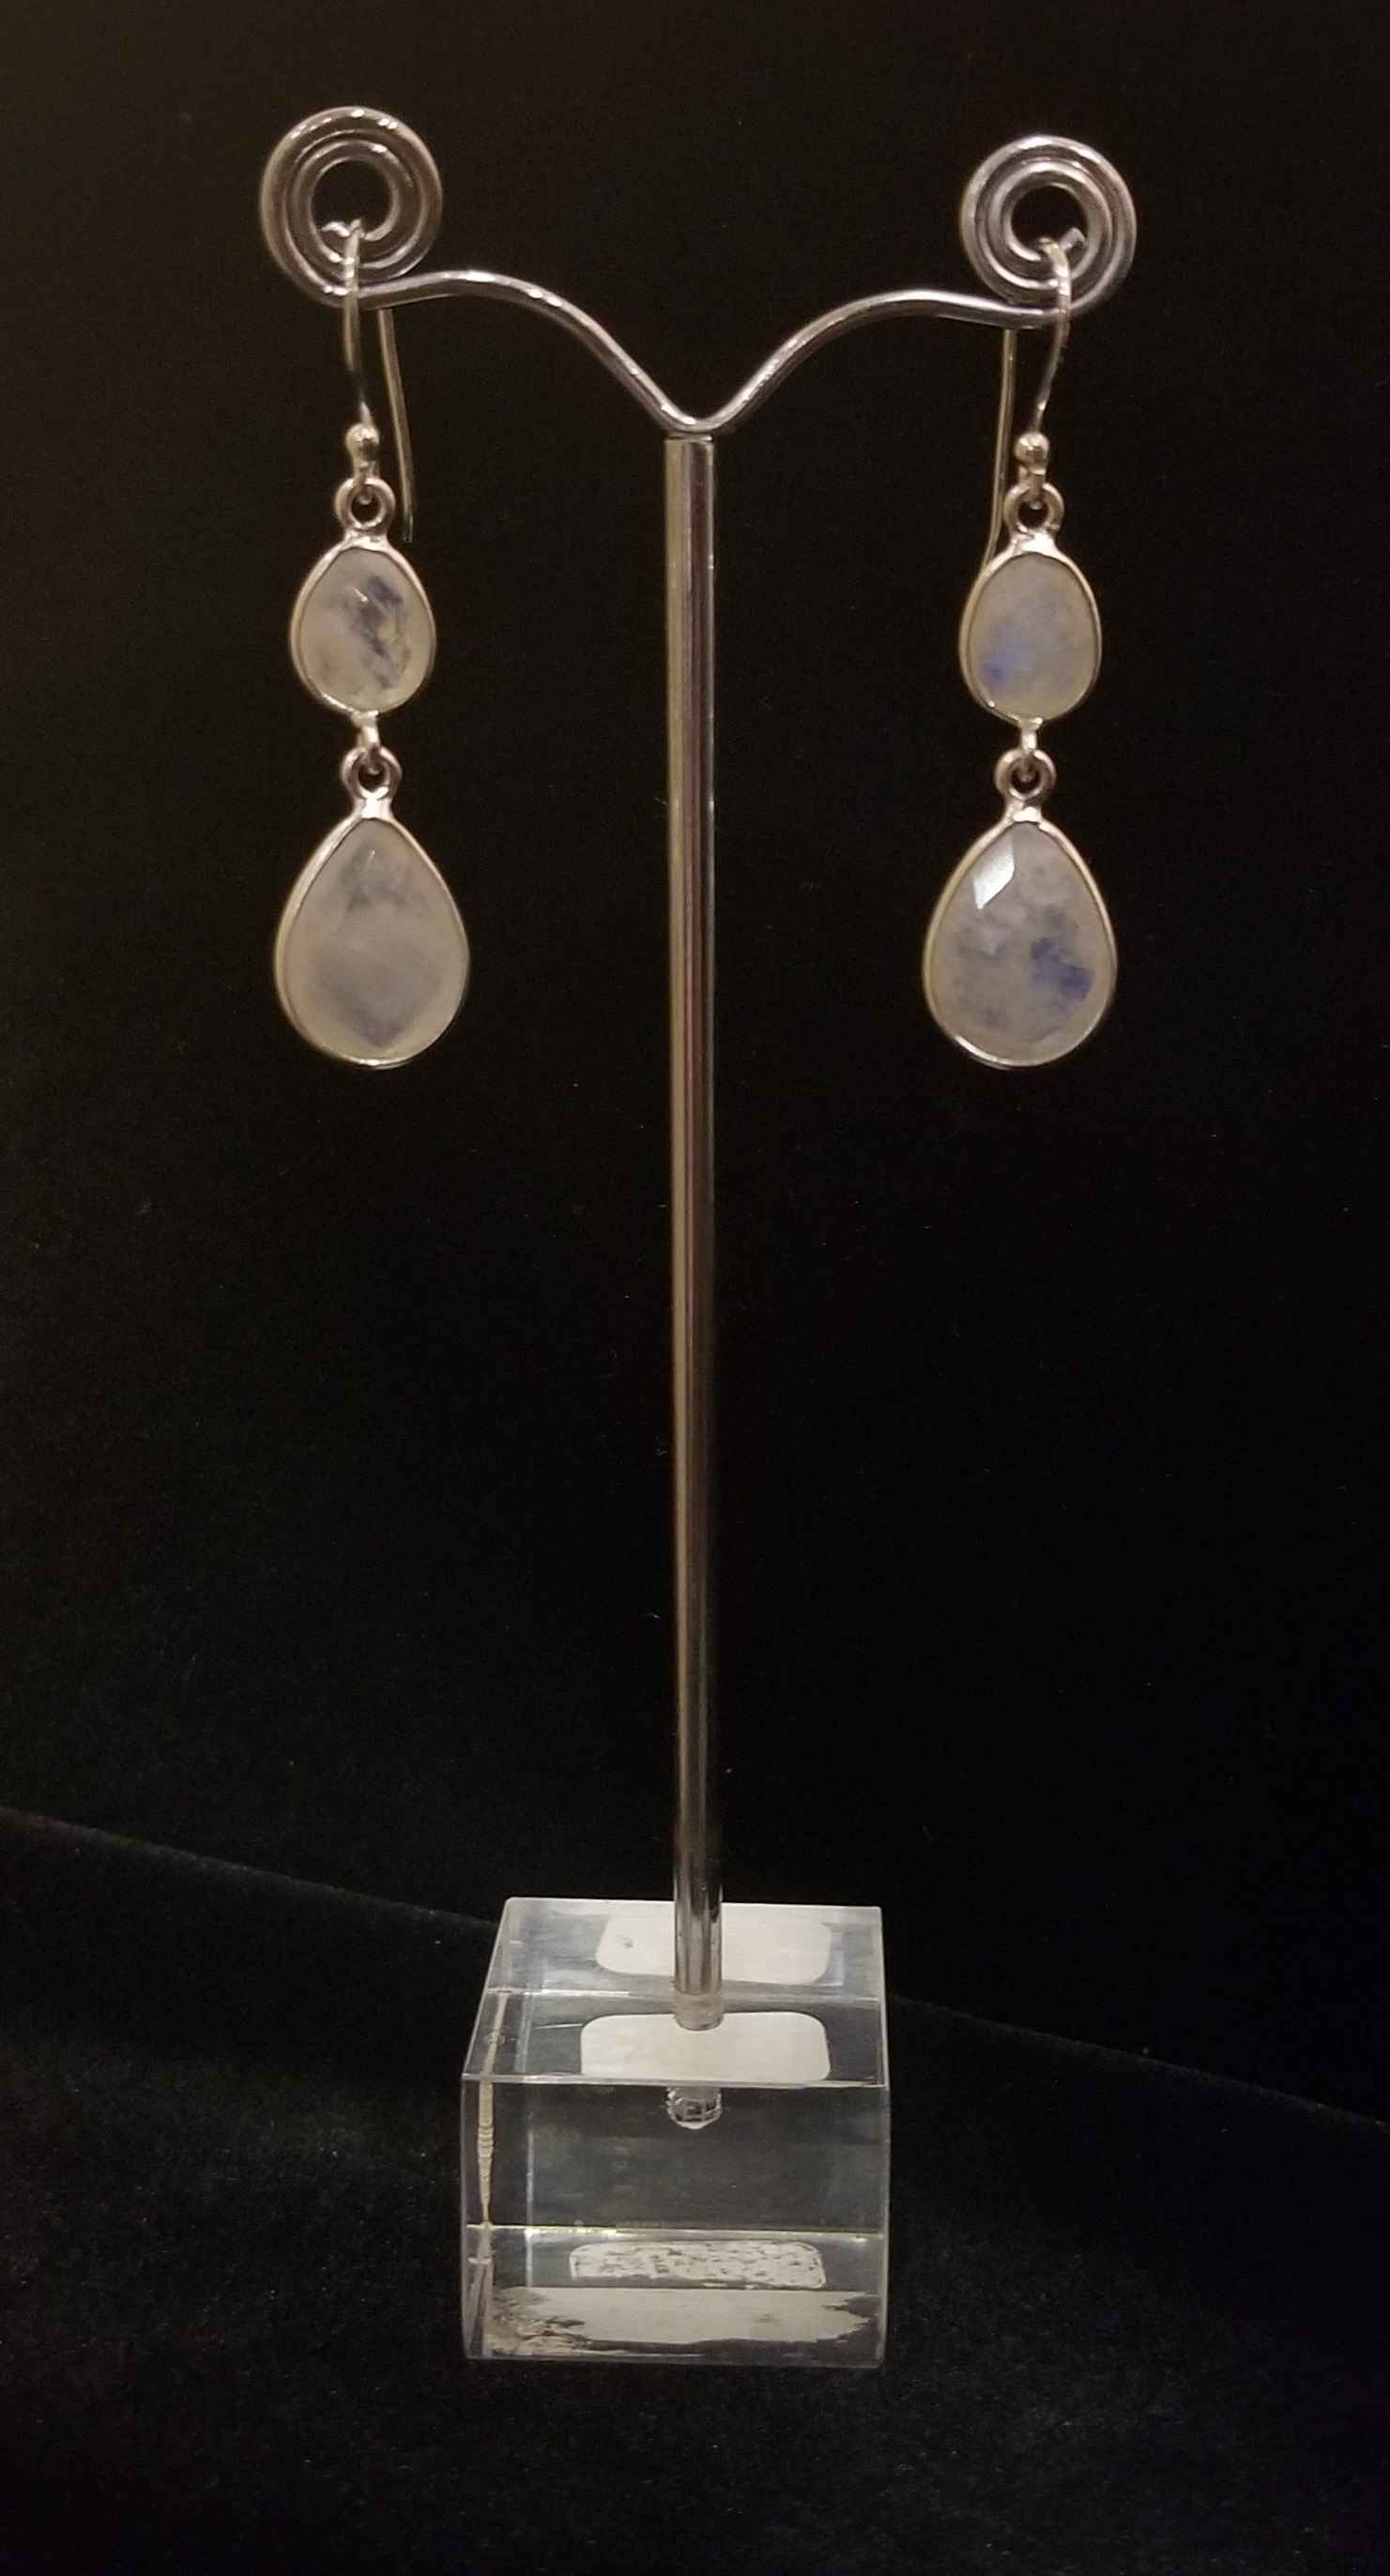 Earrings - Moonstone ... by  Gallery Pieces - Masterpiece Online